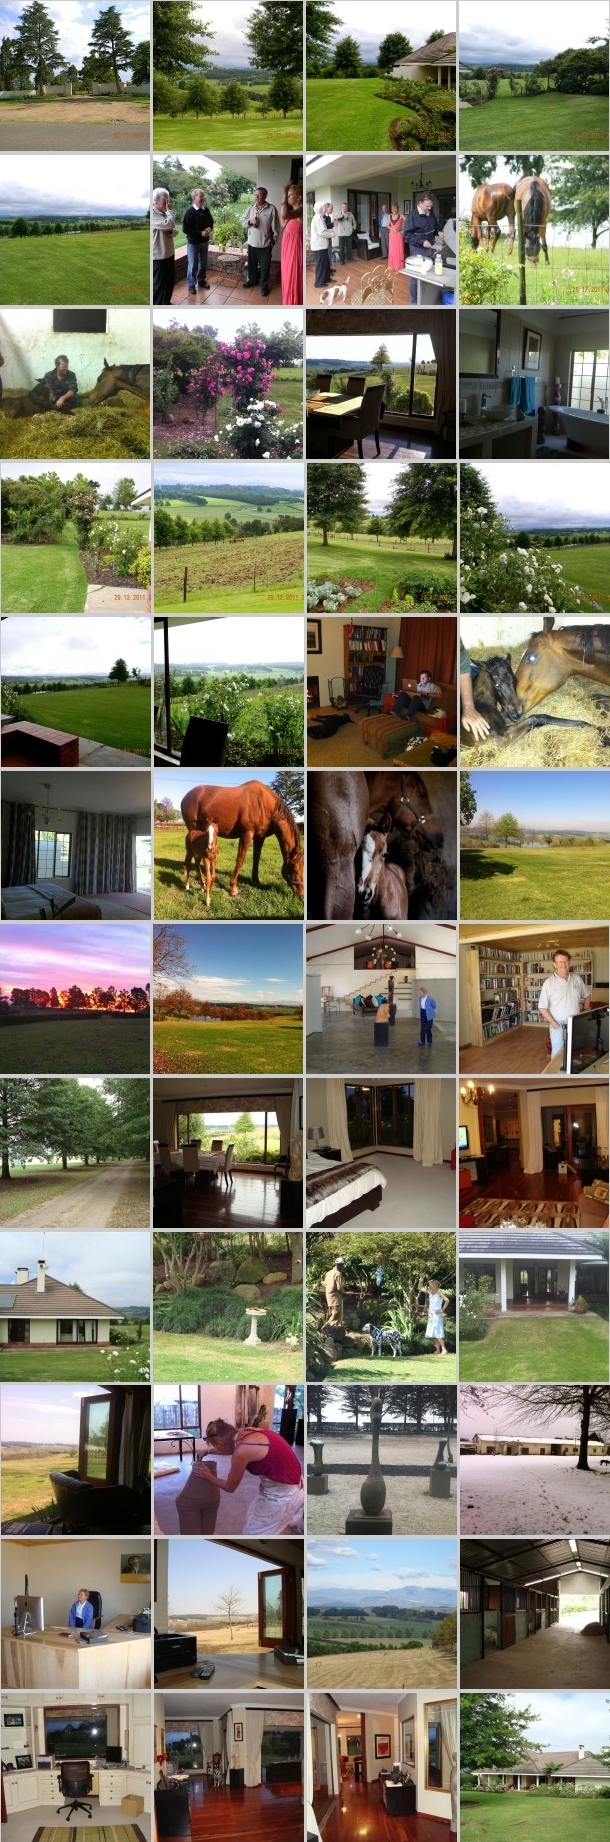 Graceland Farm In Pictures